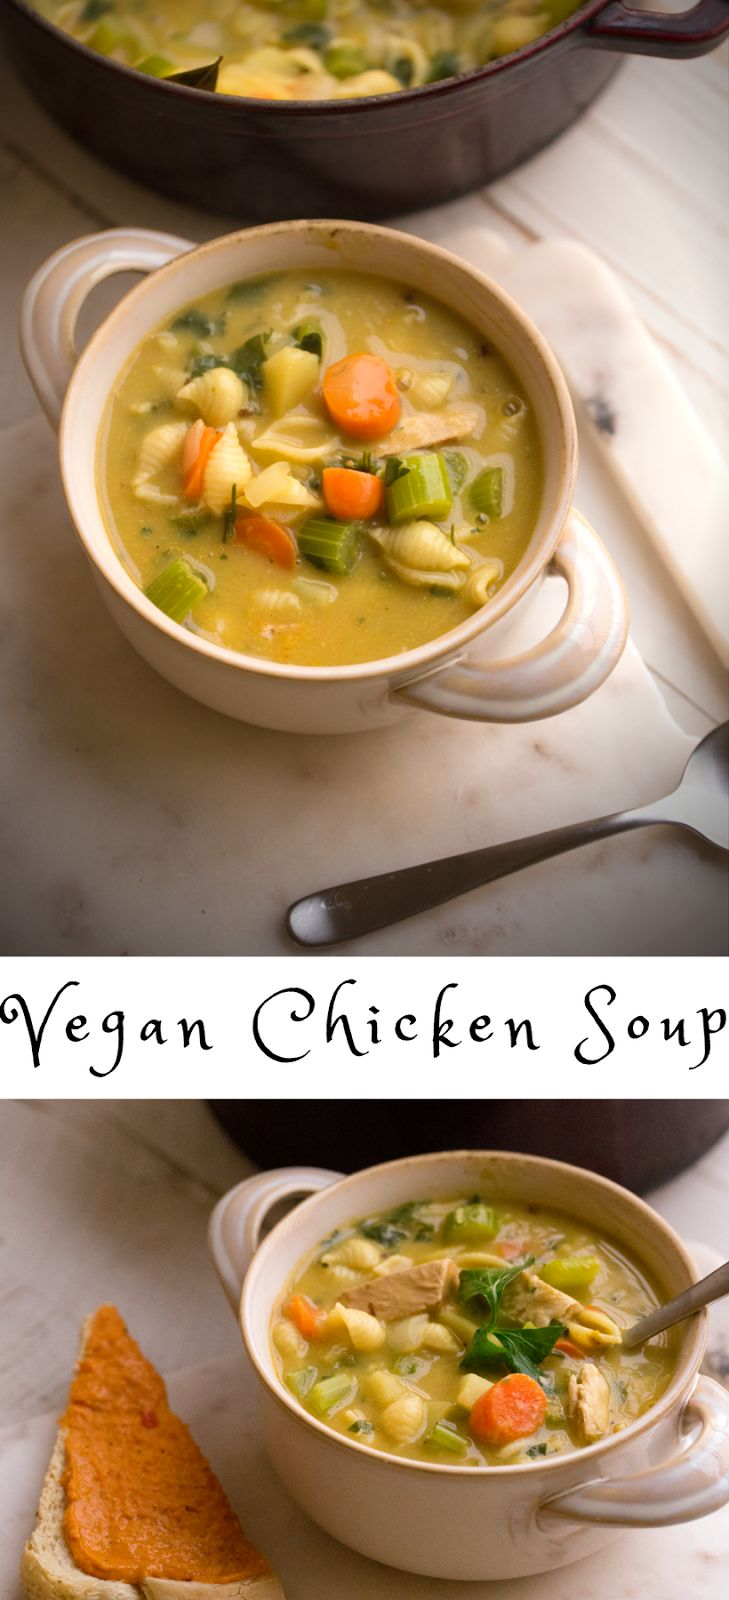 Vegan Chicken Soup with pasta, potatoes, celery, carrots and loads of warming spices. Vegan chicken or a substitute, like beans. This healing soup is an easy dinner.